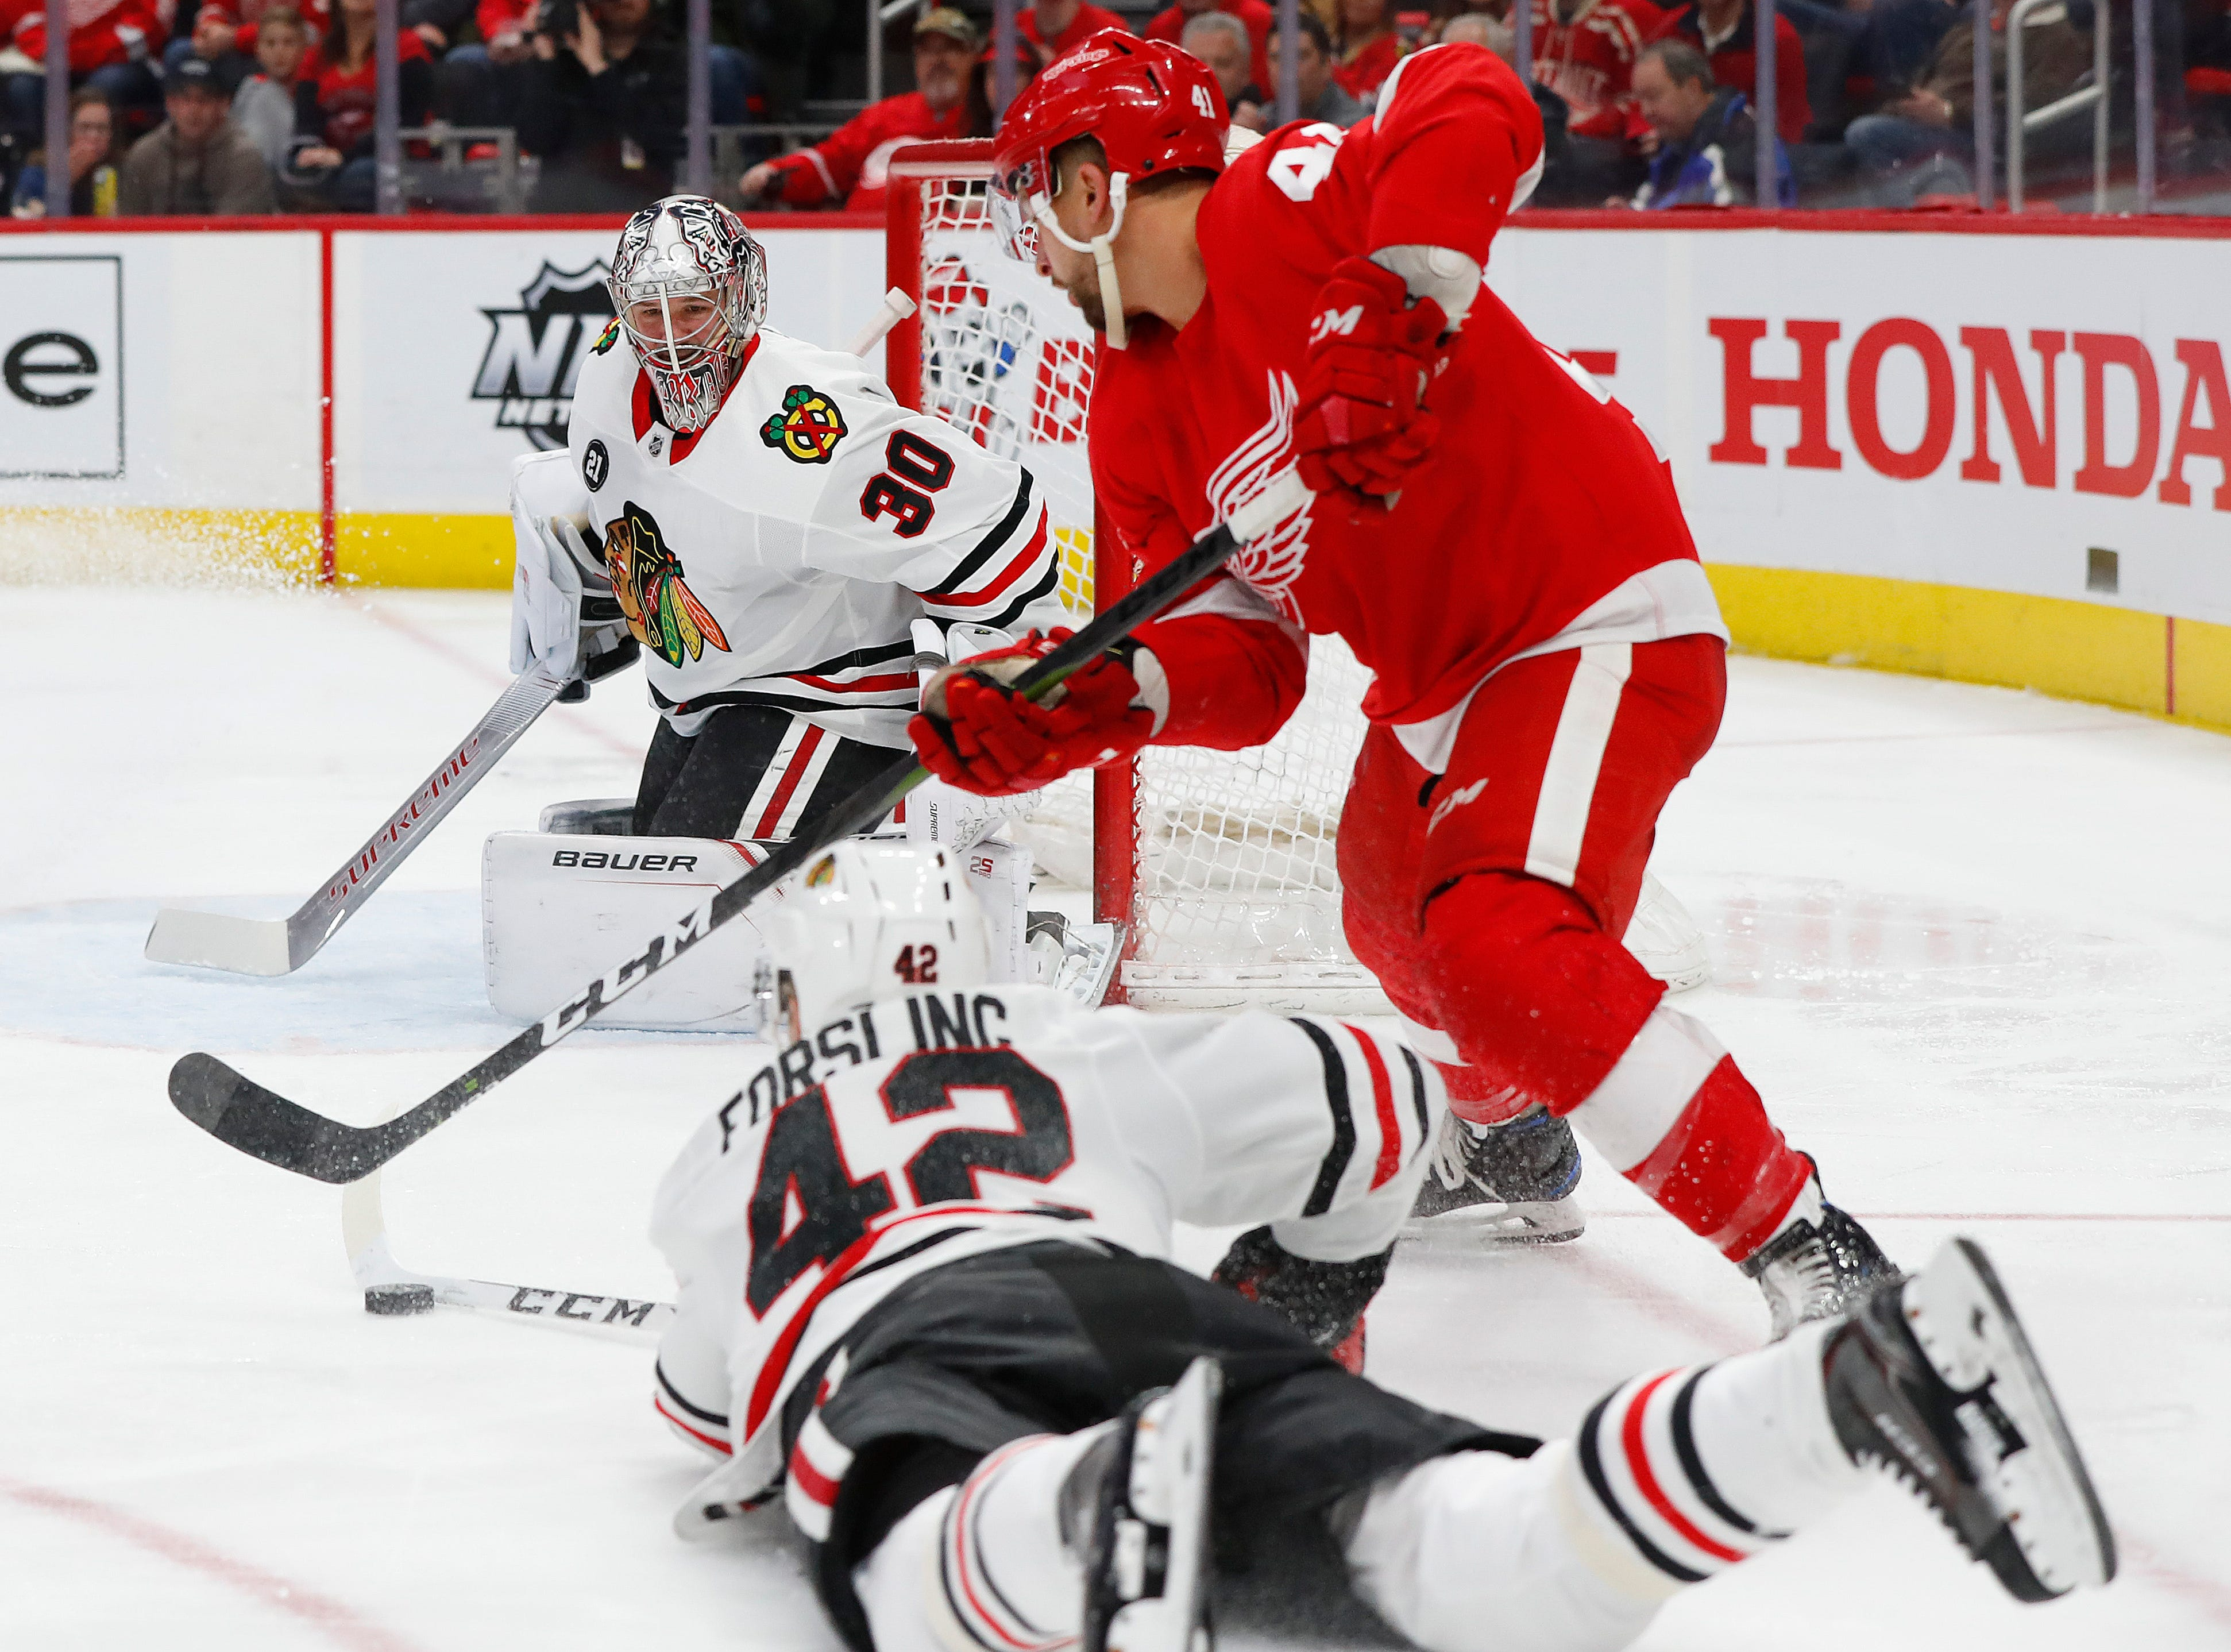 Chicago Blackhawks defenseman Gustav Forsling (42) takes the puck from Detroit Red Wings center Luke Glendening (41) in front of Cam Ward (30) in the second period of an NHL hockey game Wednesday, Feb. 20, 2019, in Detroit.